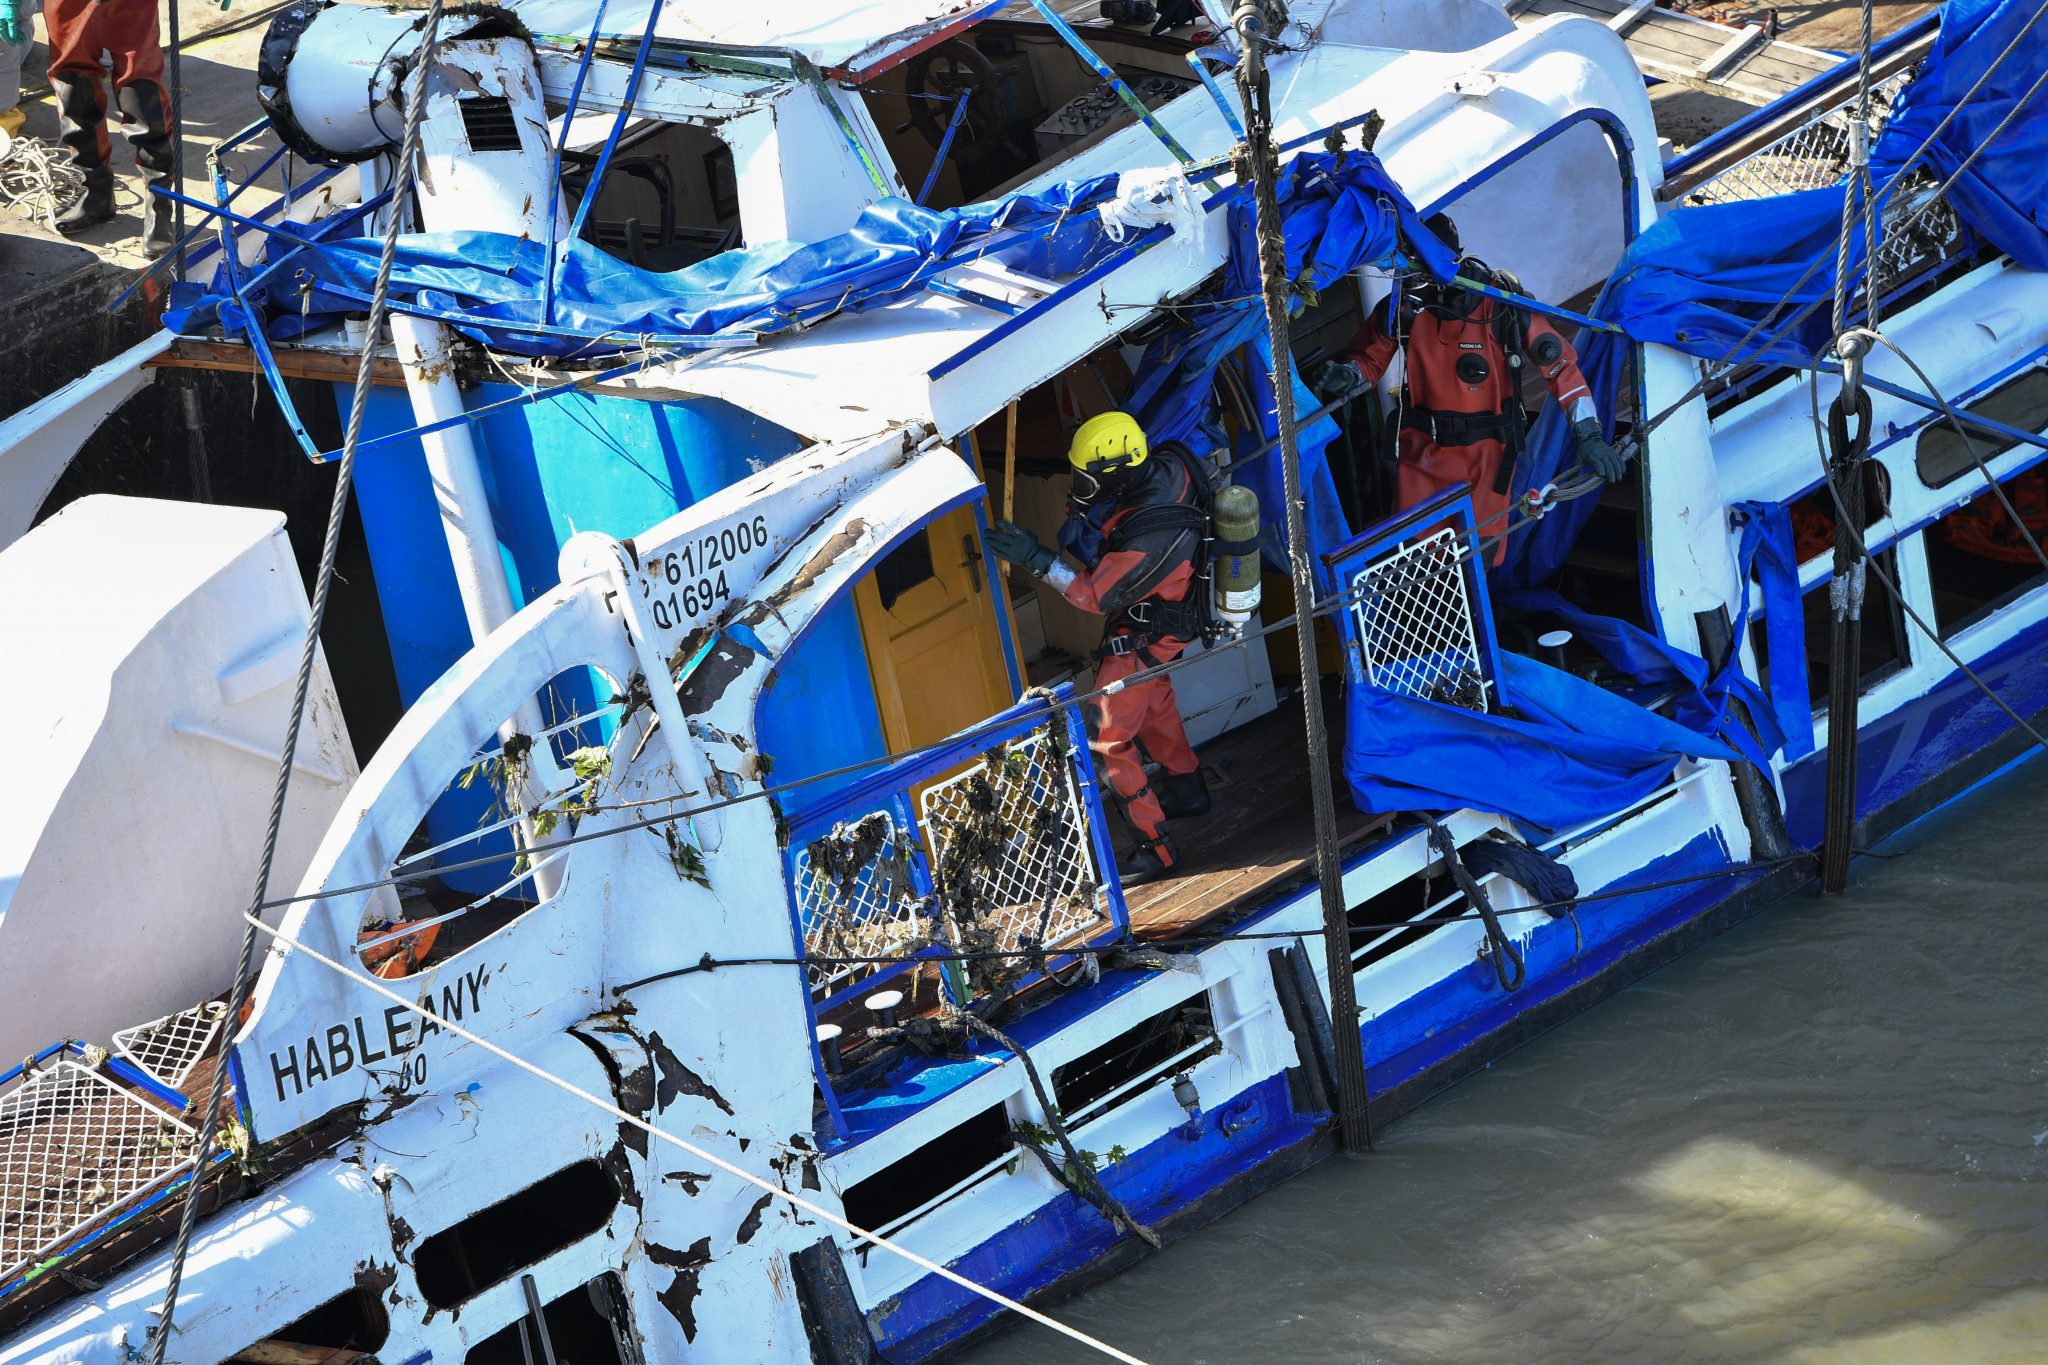 Ship Collision: Captain of Close-by Ship to Remain under Criminal Supervision